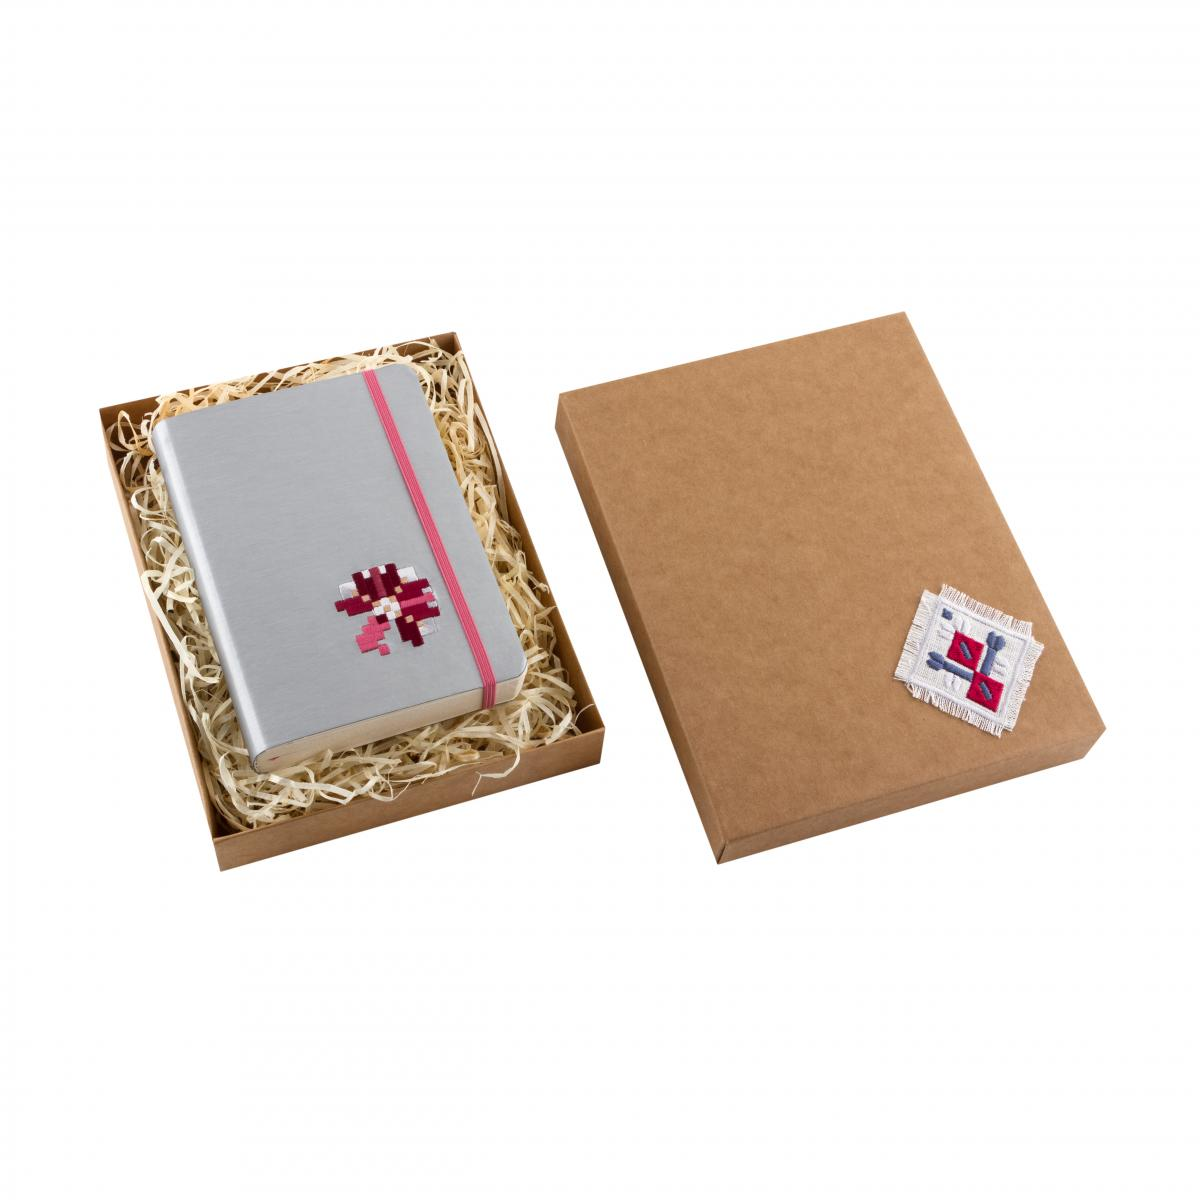 Eco-leather notebook with embroidery Kachalochka, silver. Photo №3. | Narodnyi dim Ukraine